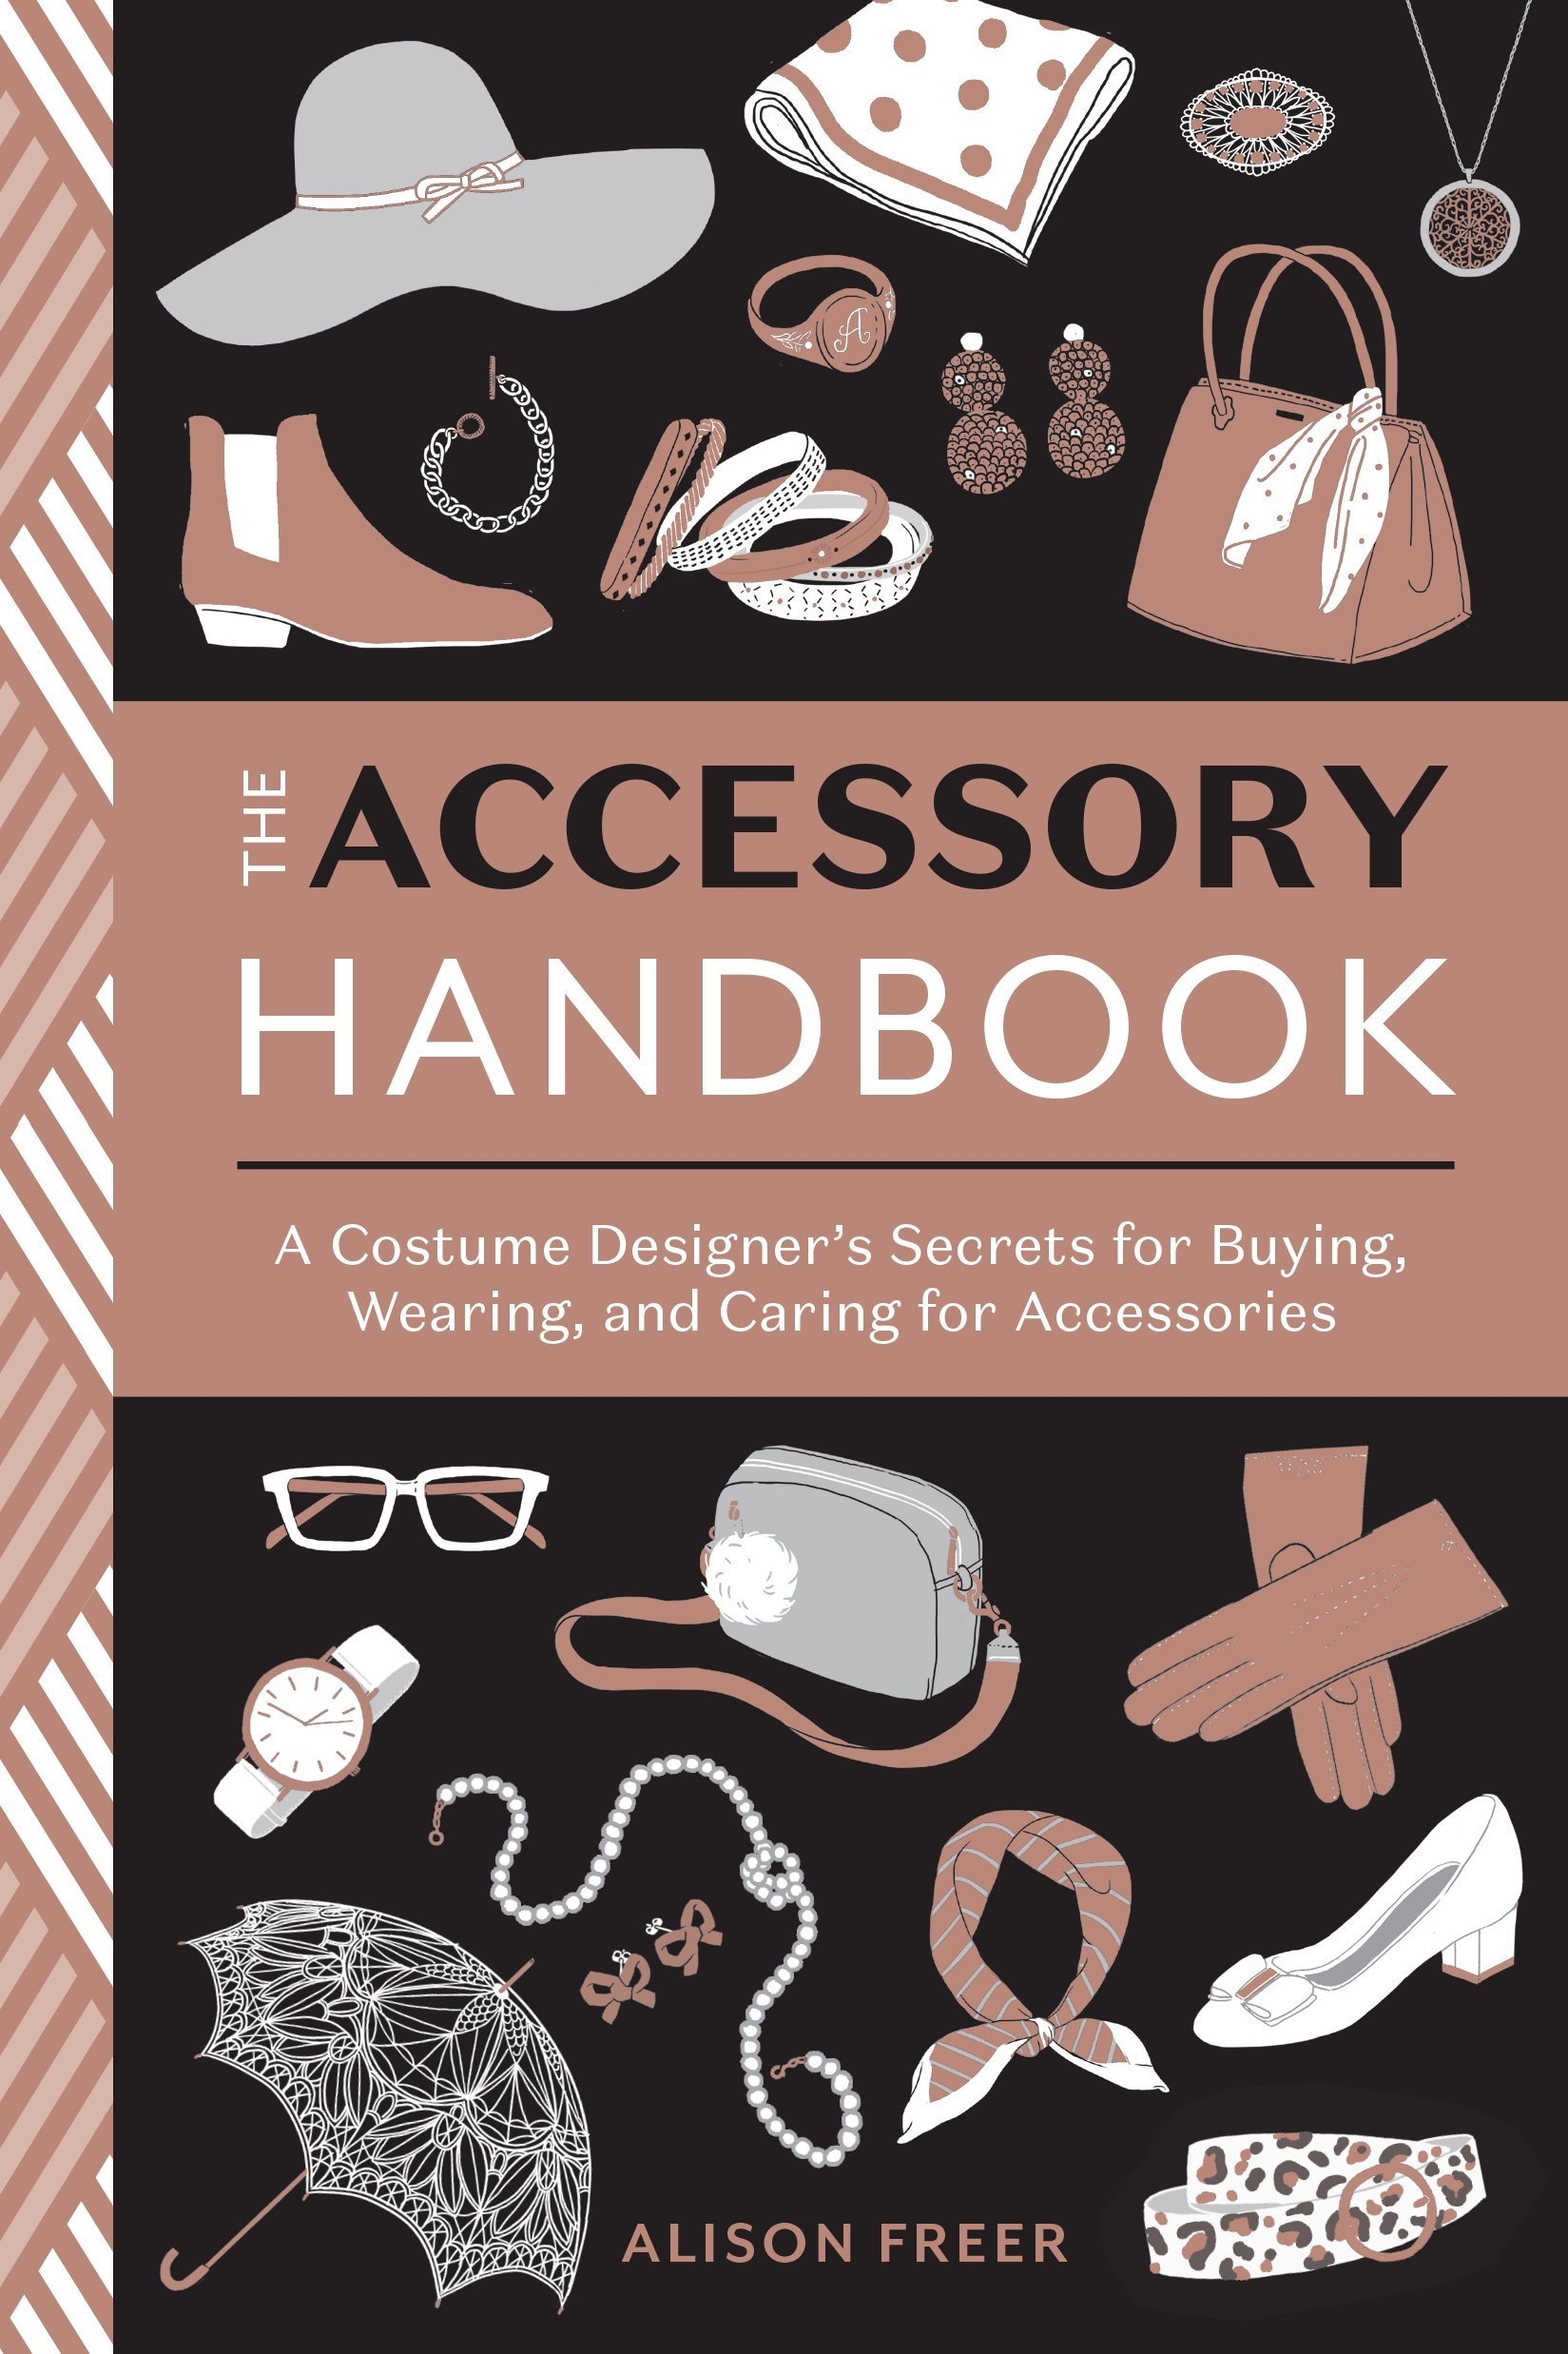 The Accessory Handbook: A Costume Designer's Secrets for Buying, Wearing, and Caring for Accessories